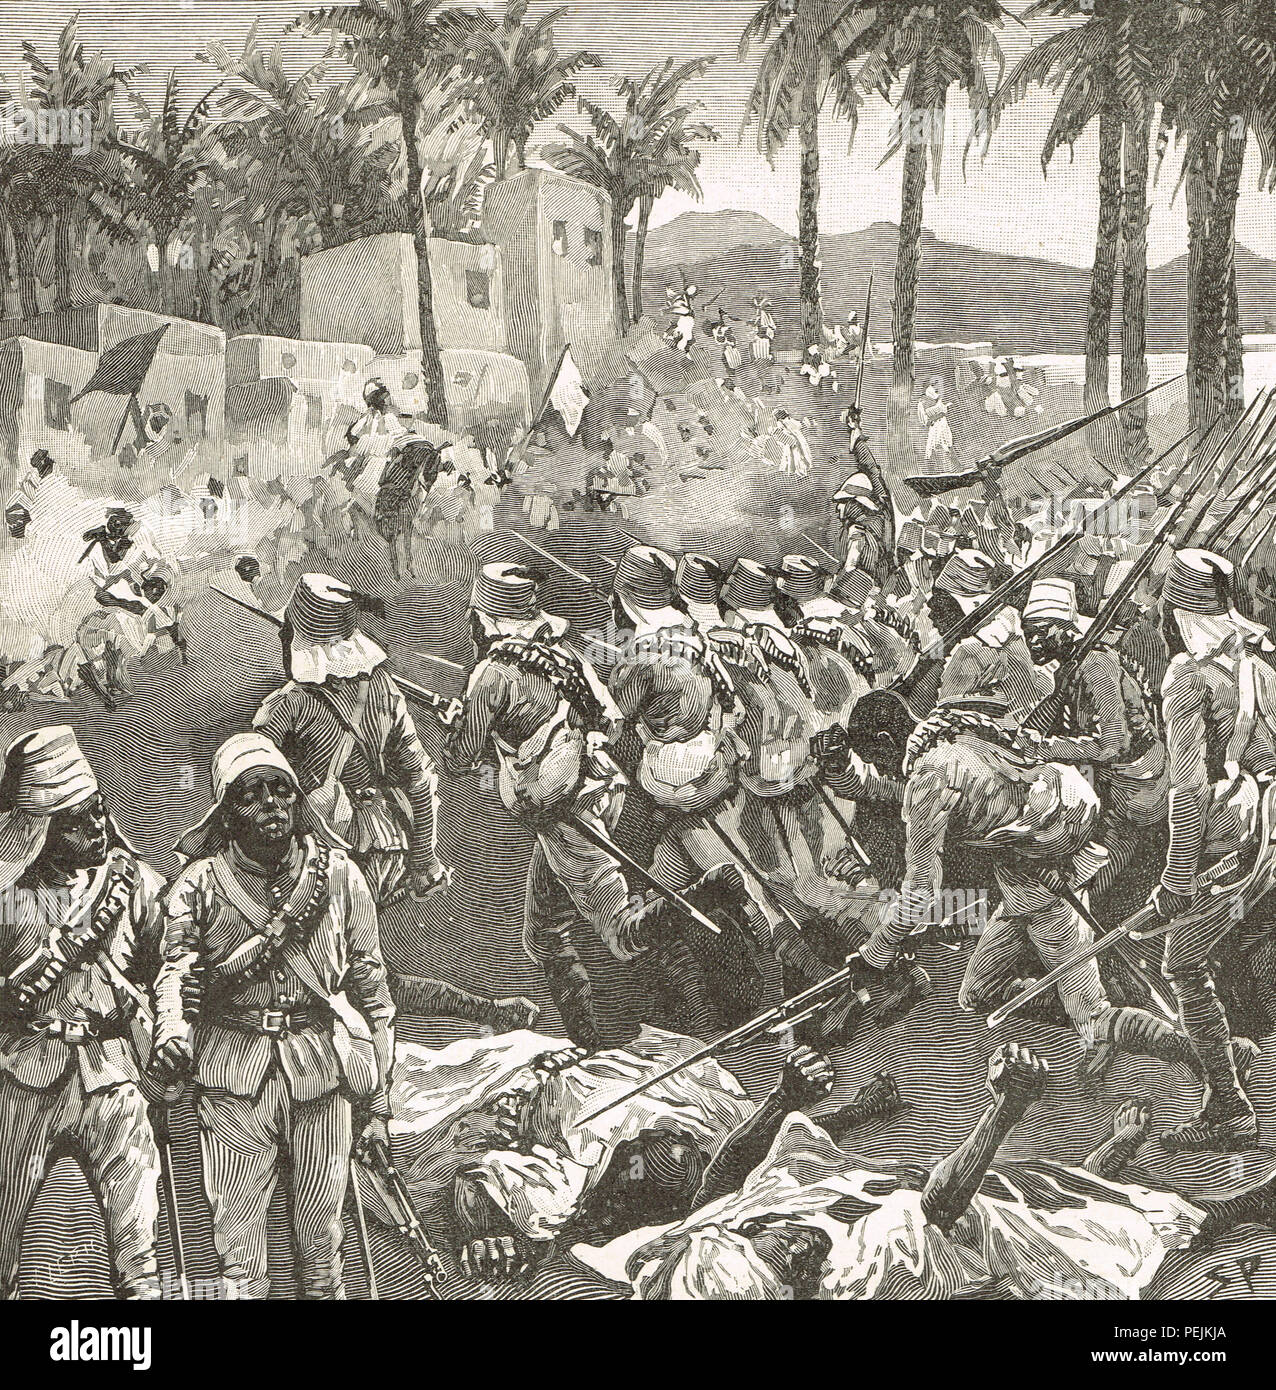 Anglo-Egyptian troops storming Firket (or Ferkeh ), The Battle of Ferkeh (or Firket), during the Mahdist War.  A Mahdist Sudanese army wiped out by forces under Sir Herbert Kitchener on 7 June 1896 - Stock Image